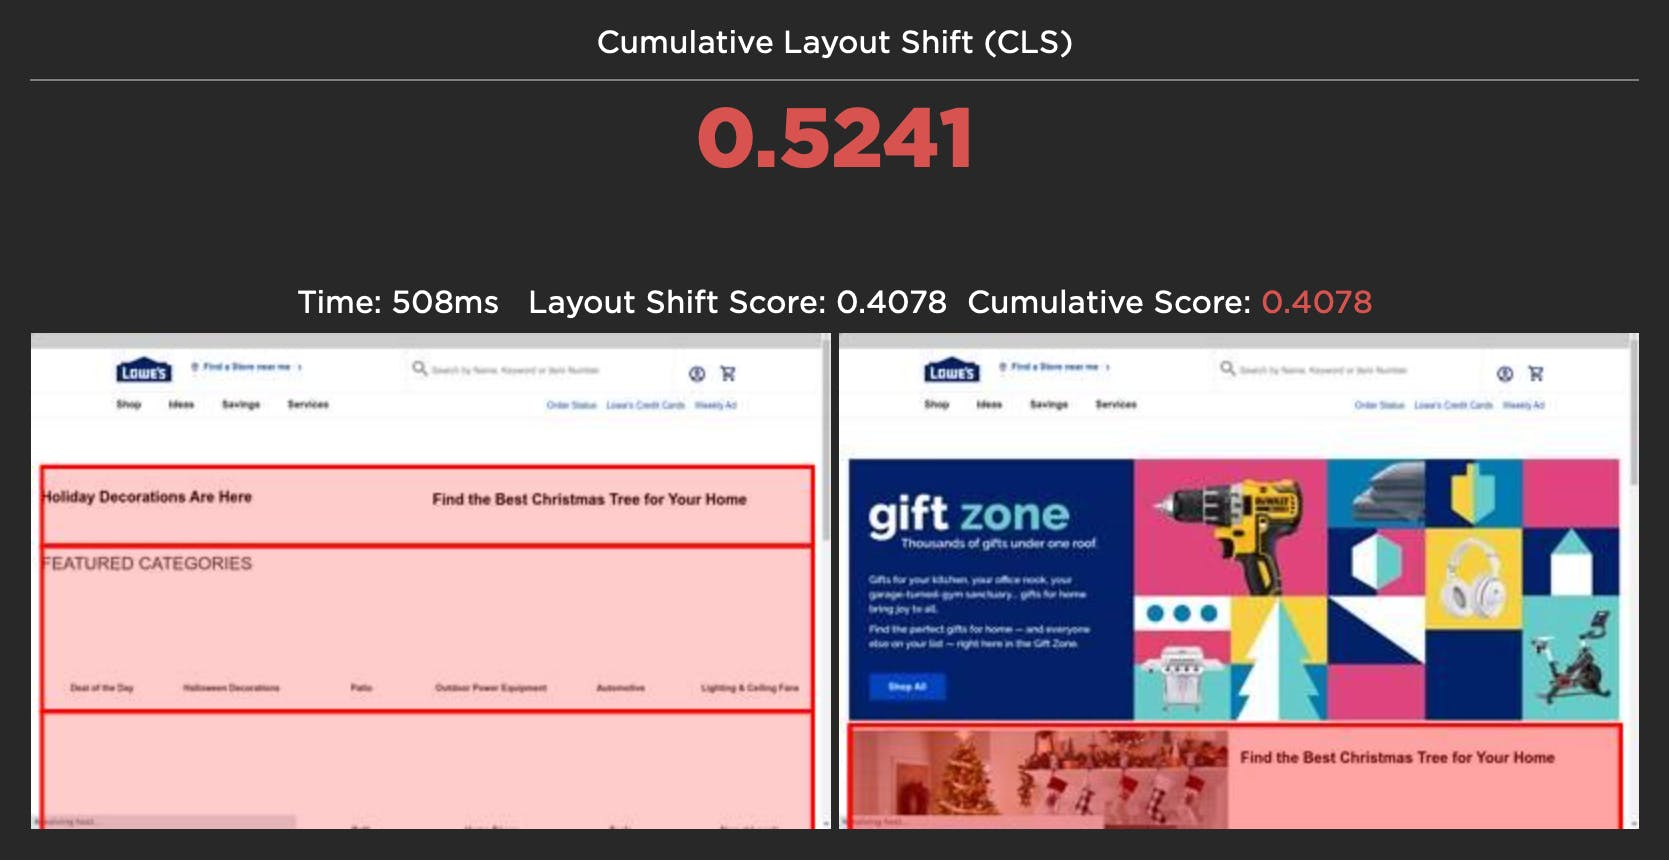 CLS Layout Shift